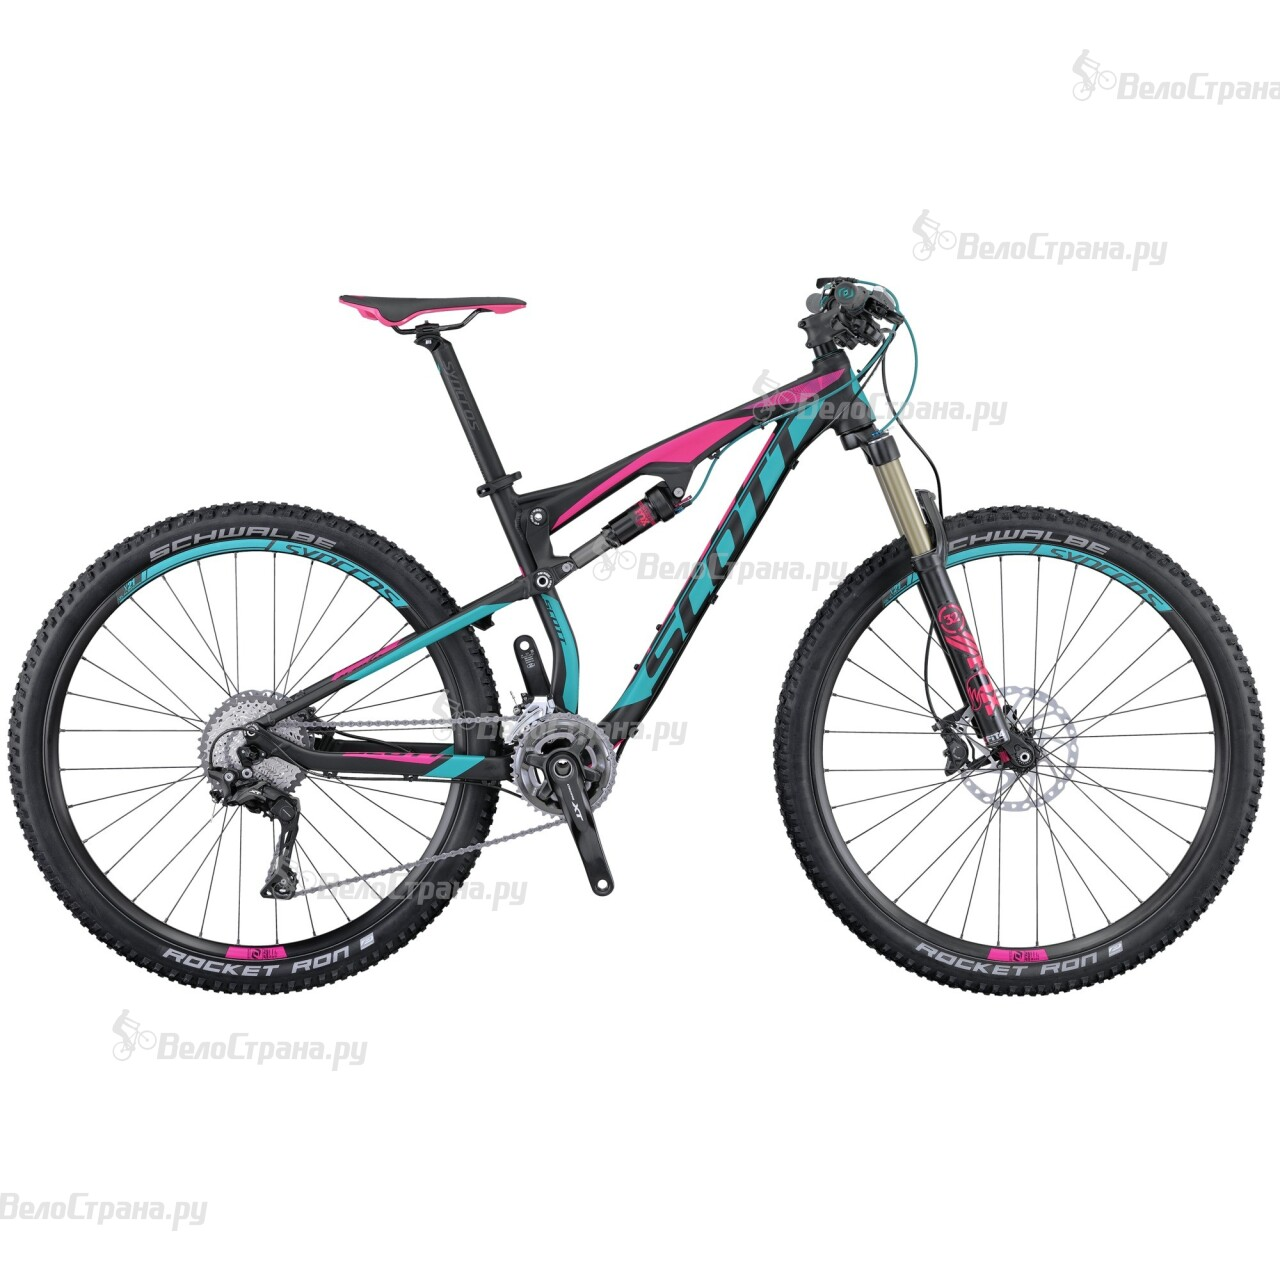 Велосипед Scott Contessa Spark 700 (2016) scott contessa genius 700 2016